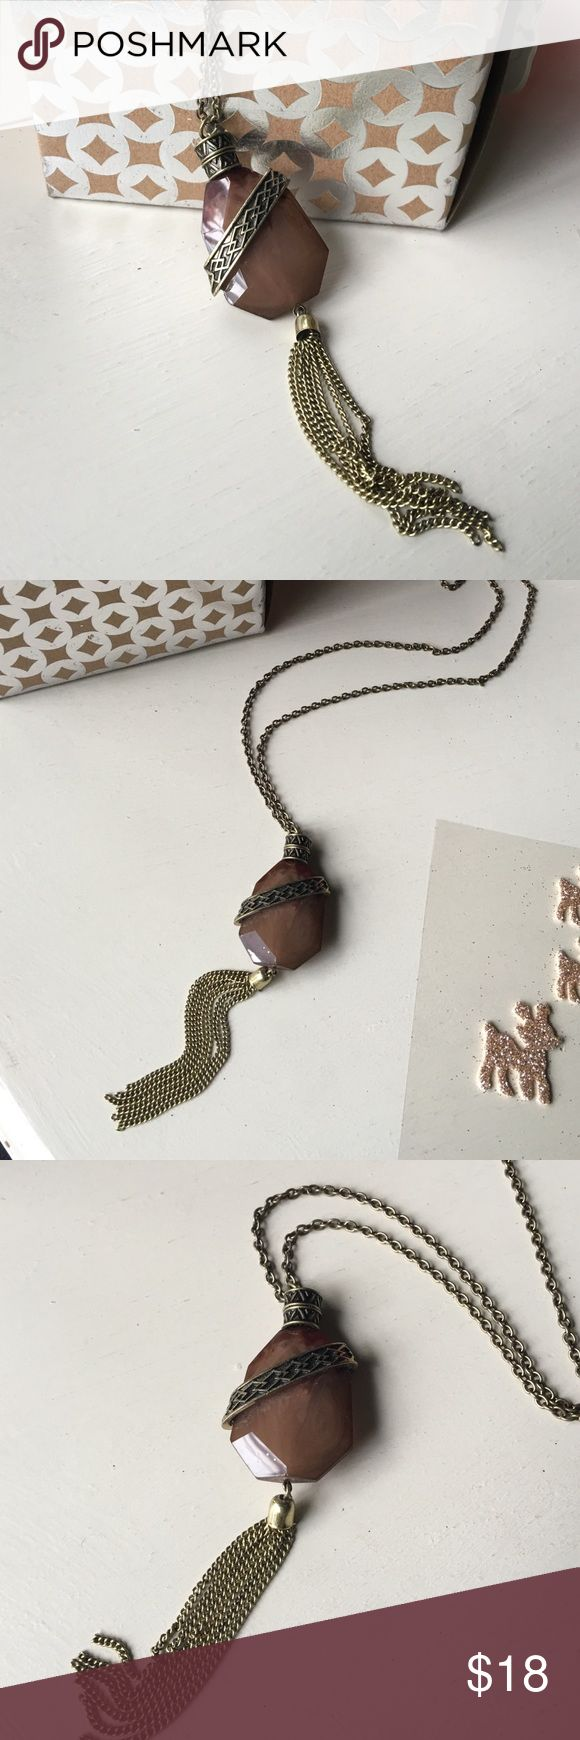 🌰🍂🆕Bronzed Gem Tassel Necklace Newly listed! 🌰🍂🆕Bronzed Gem Tassel Necklace🍂Long Antiqued Bronzed chain🍂Milky brown glass gem Pendant🍂🌰 Jewelry Necklaces